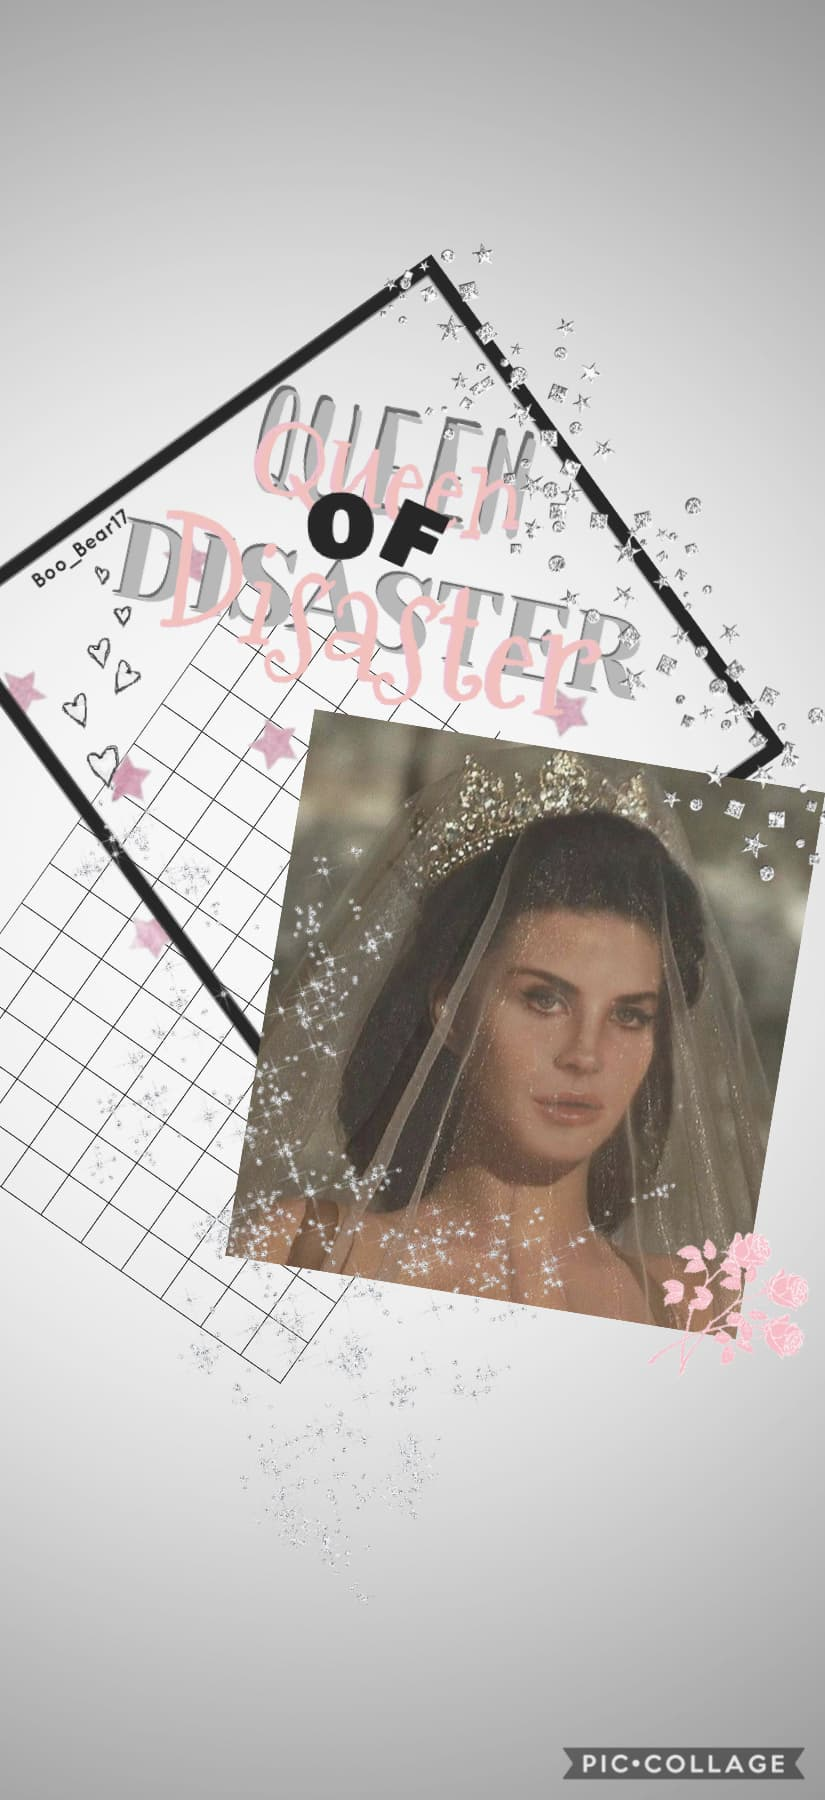 👑queen of disaster👑 •a lot of change is happening in my life and my anxiety is sky rocketing •role play with me, get to know me, something :) •song: Fall Away by Lund